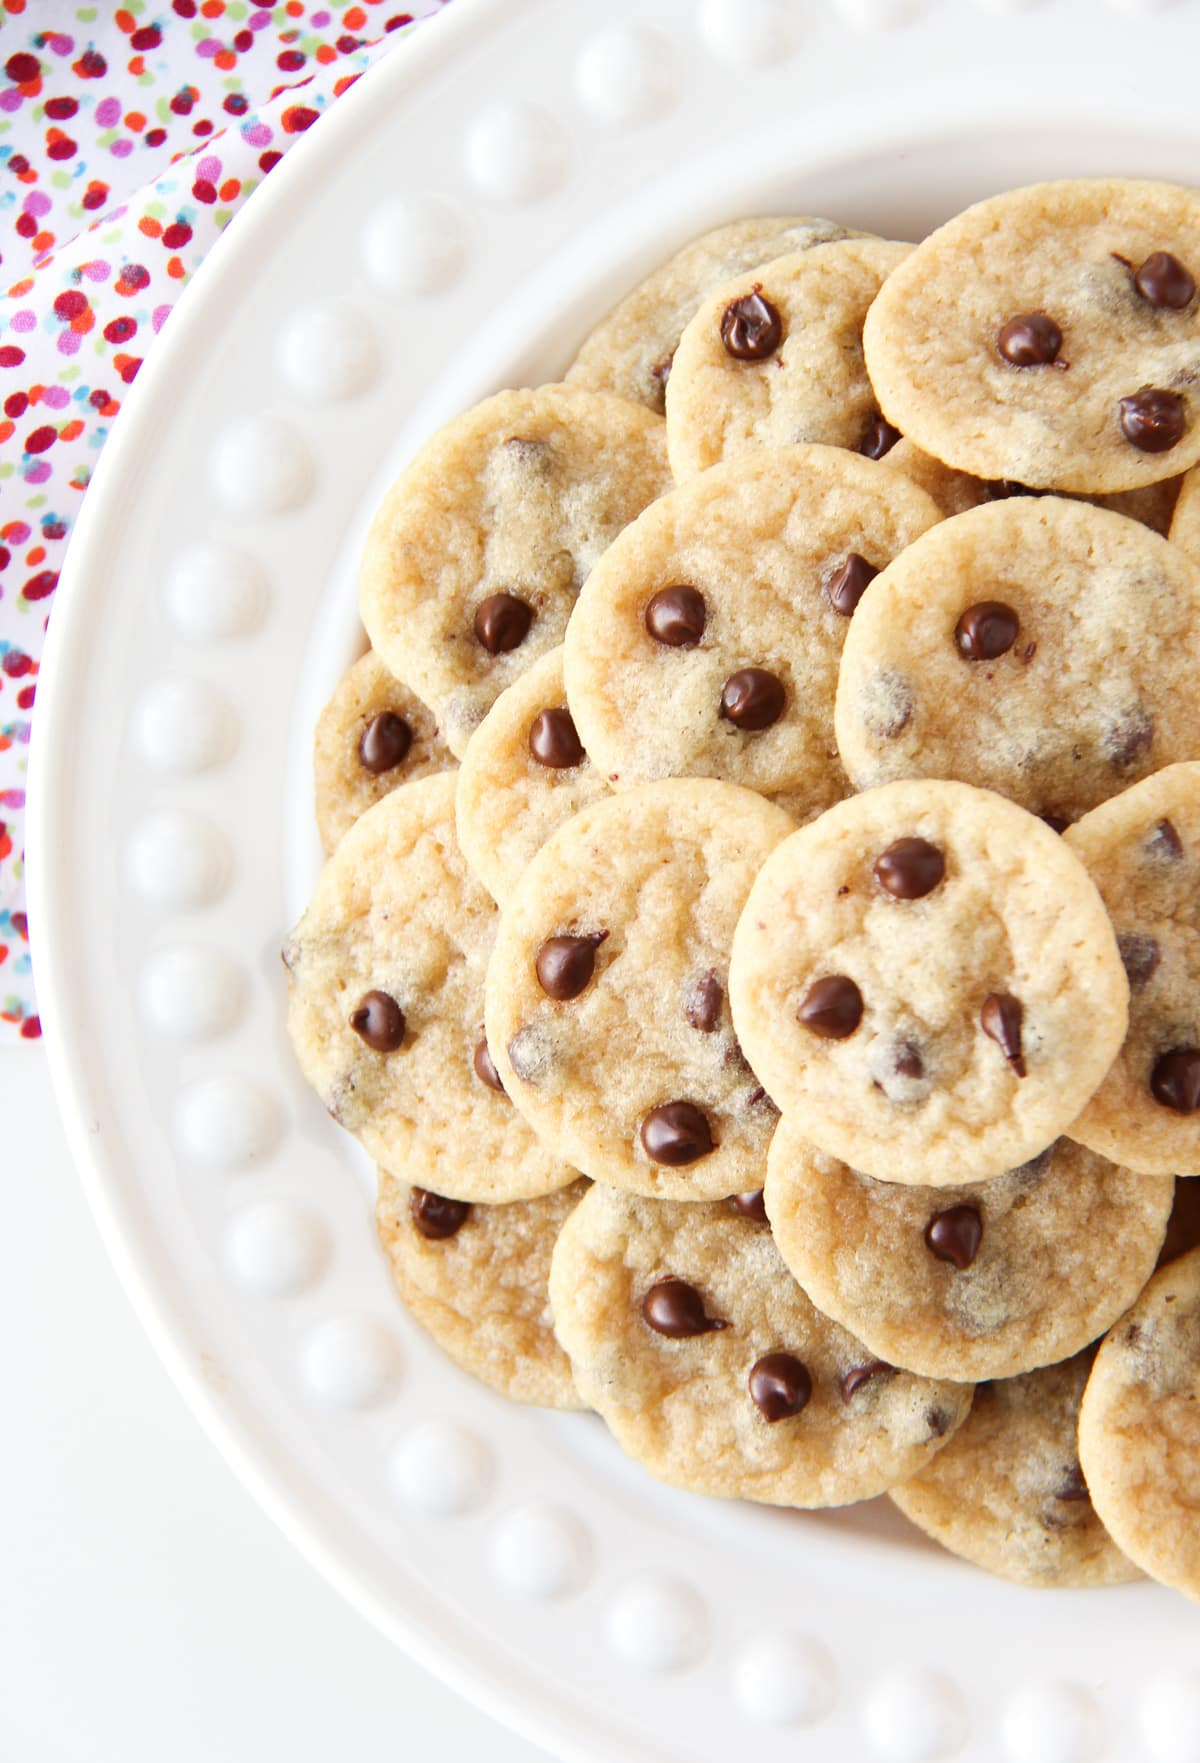 a top down view of a plate of mini chocolate chip cookies. in the background is a polkadot napkin